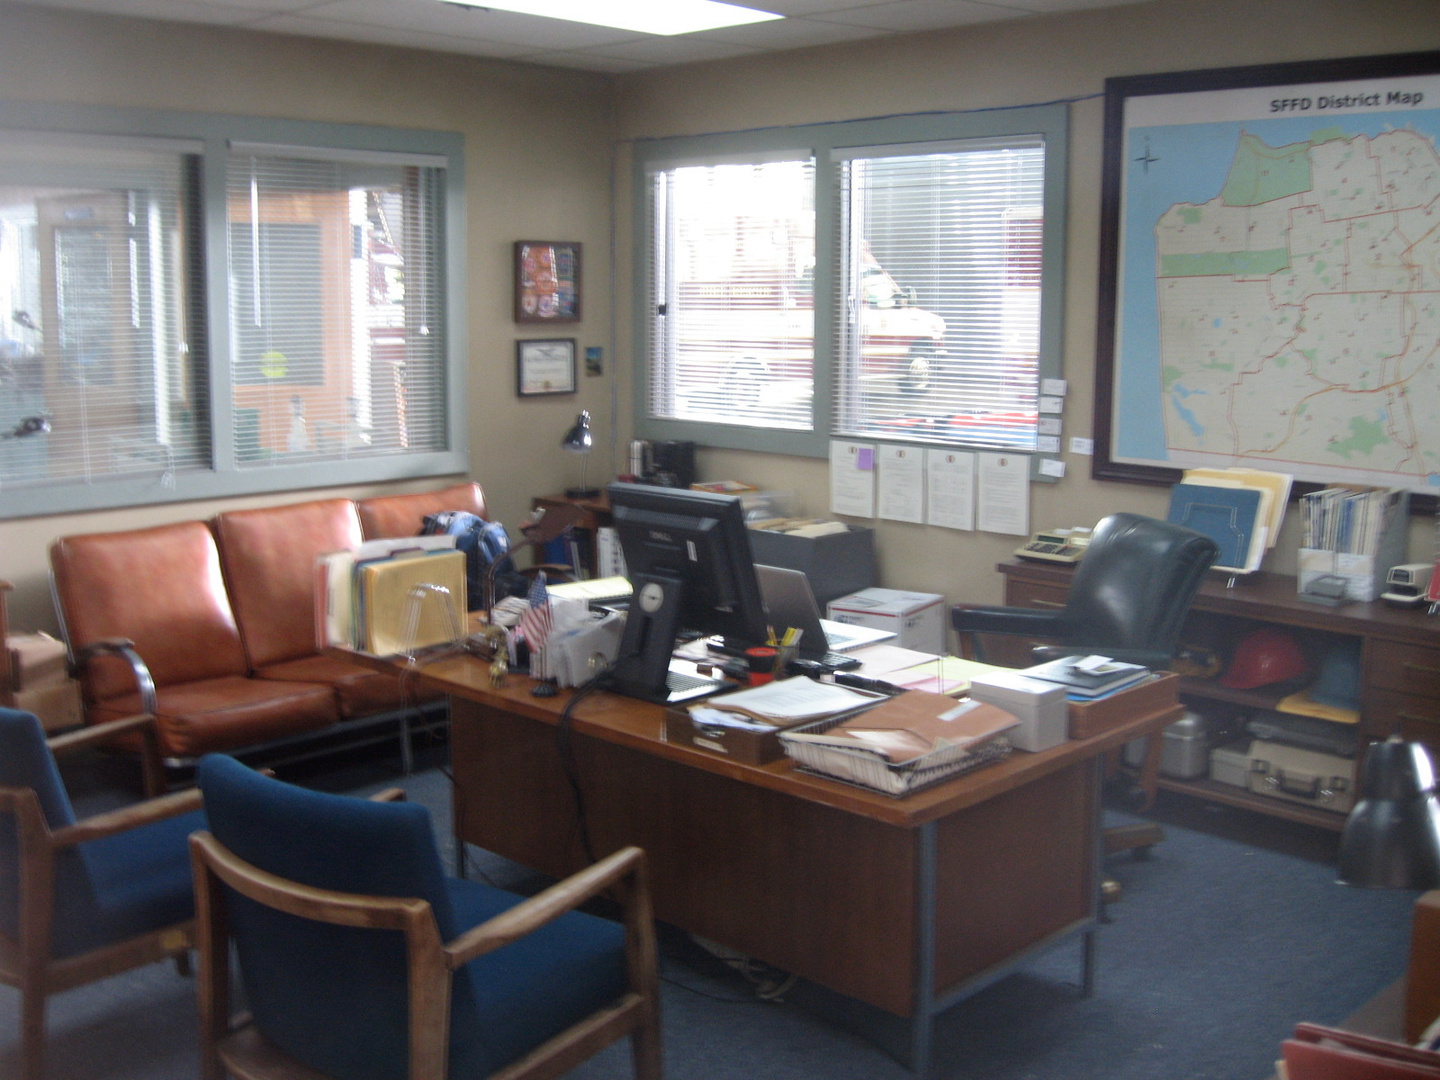 Station 4- Chief's Office